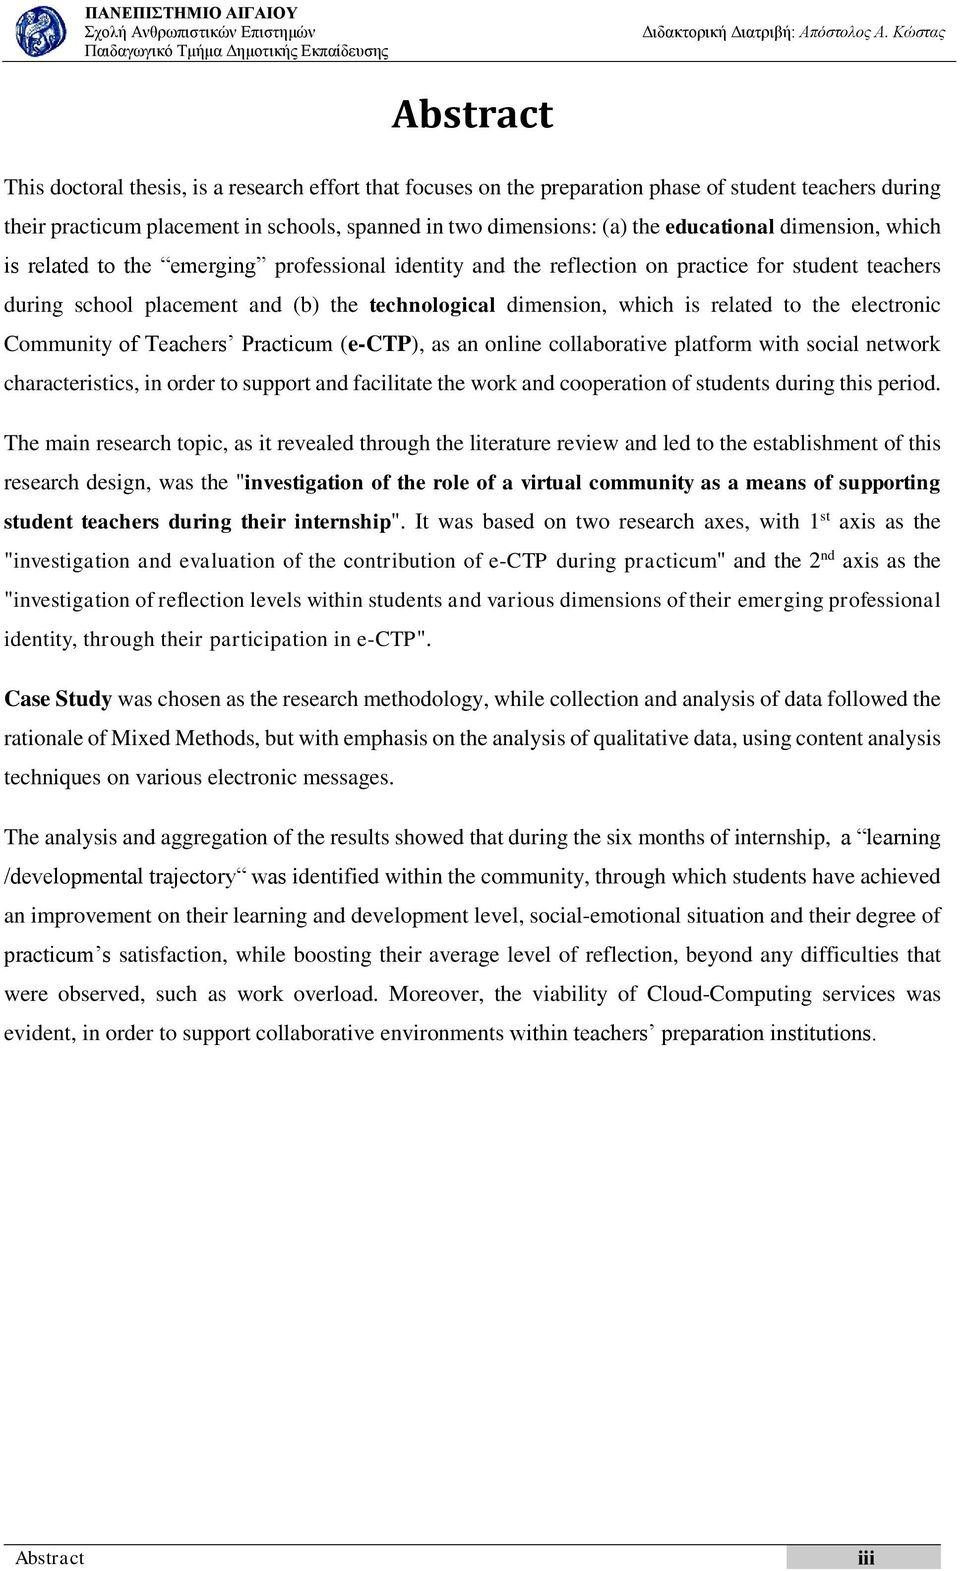 related to the electronic Community of Teachers Practicum (e-ctp), as an online collaborative platform with social network characteristics, in order to support and facilitate the work and cooperation